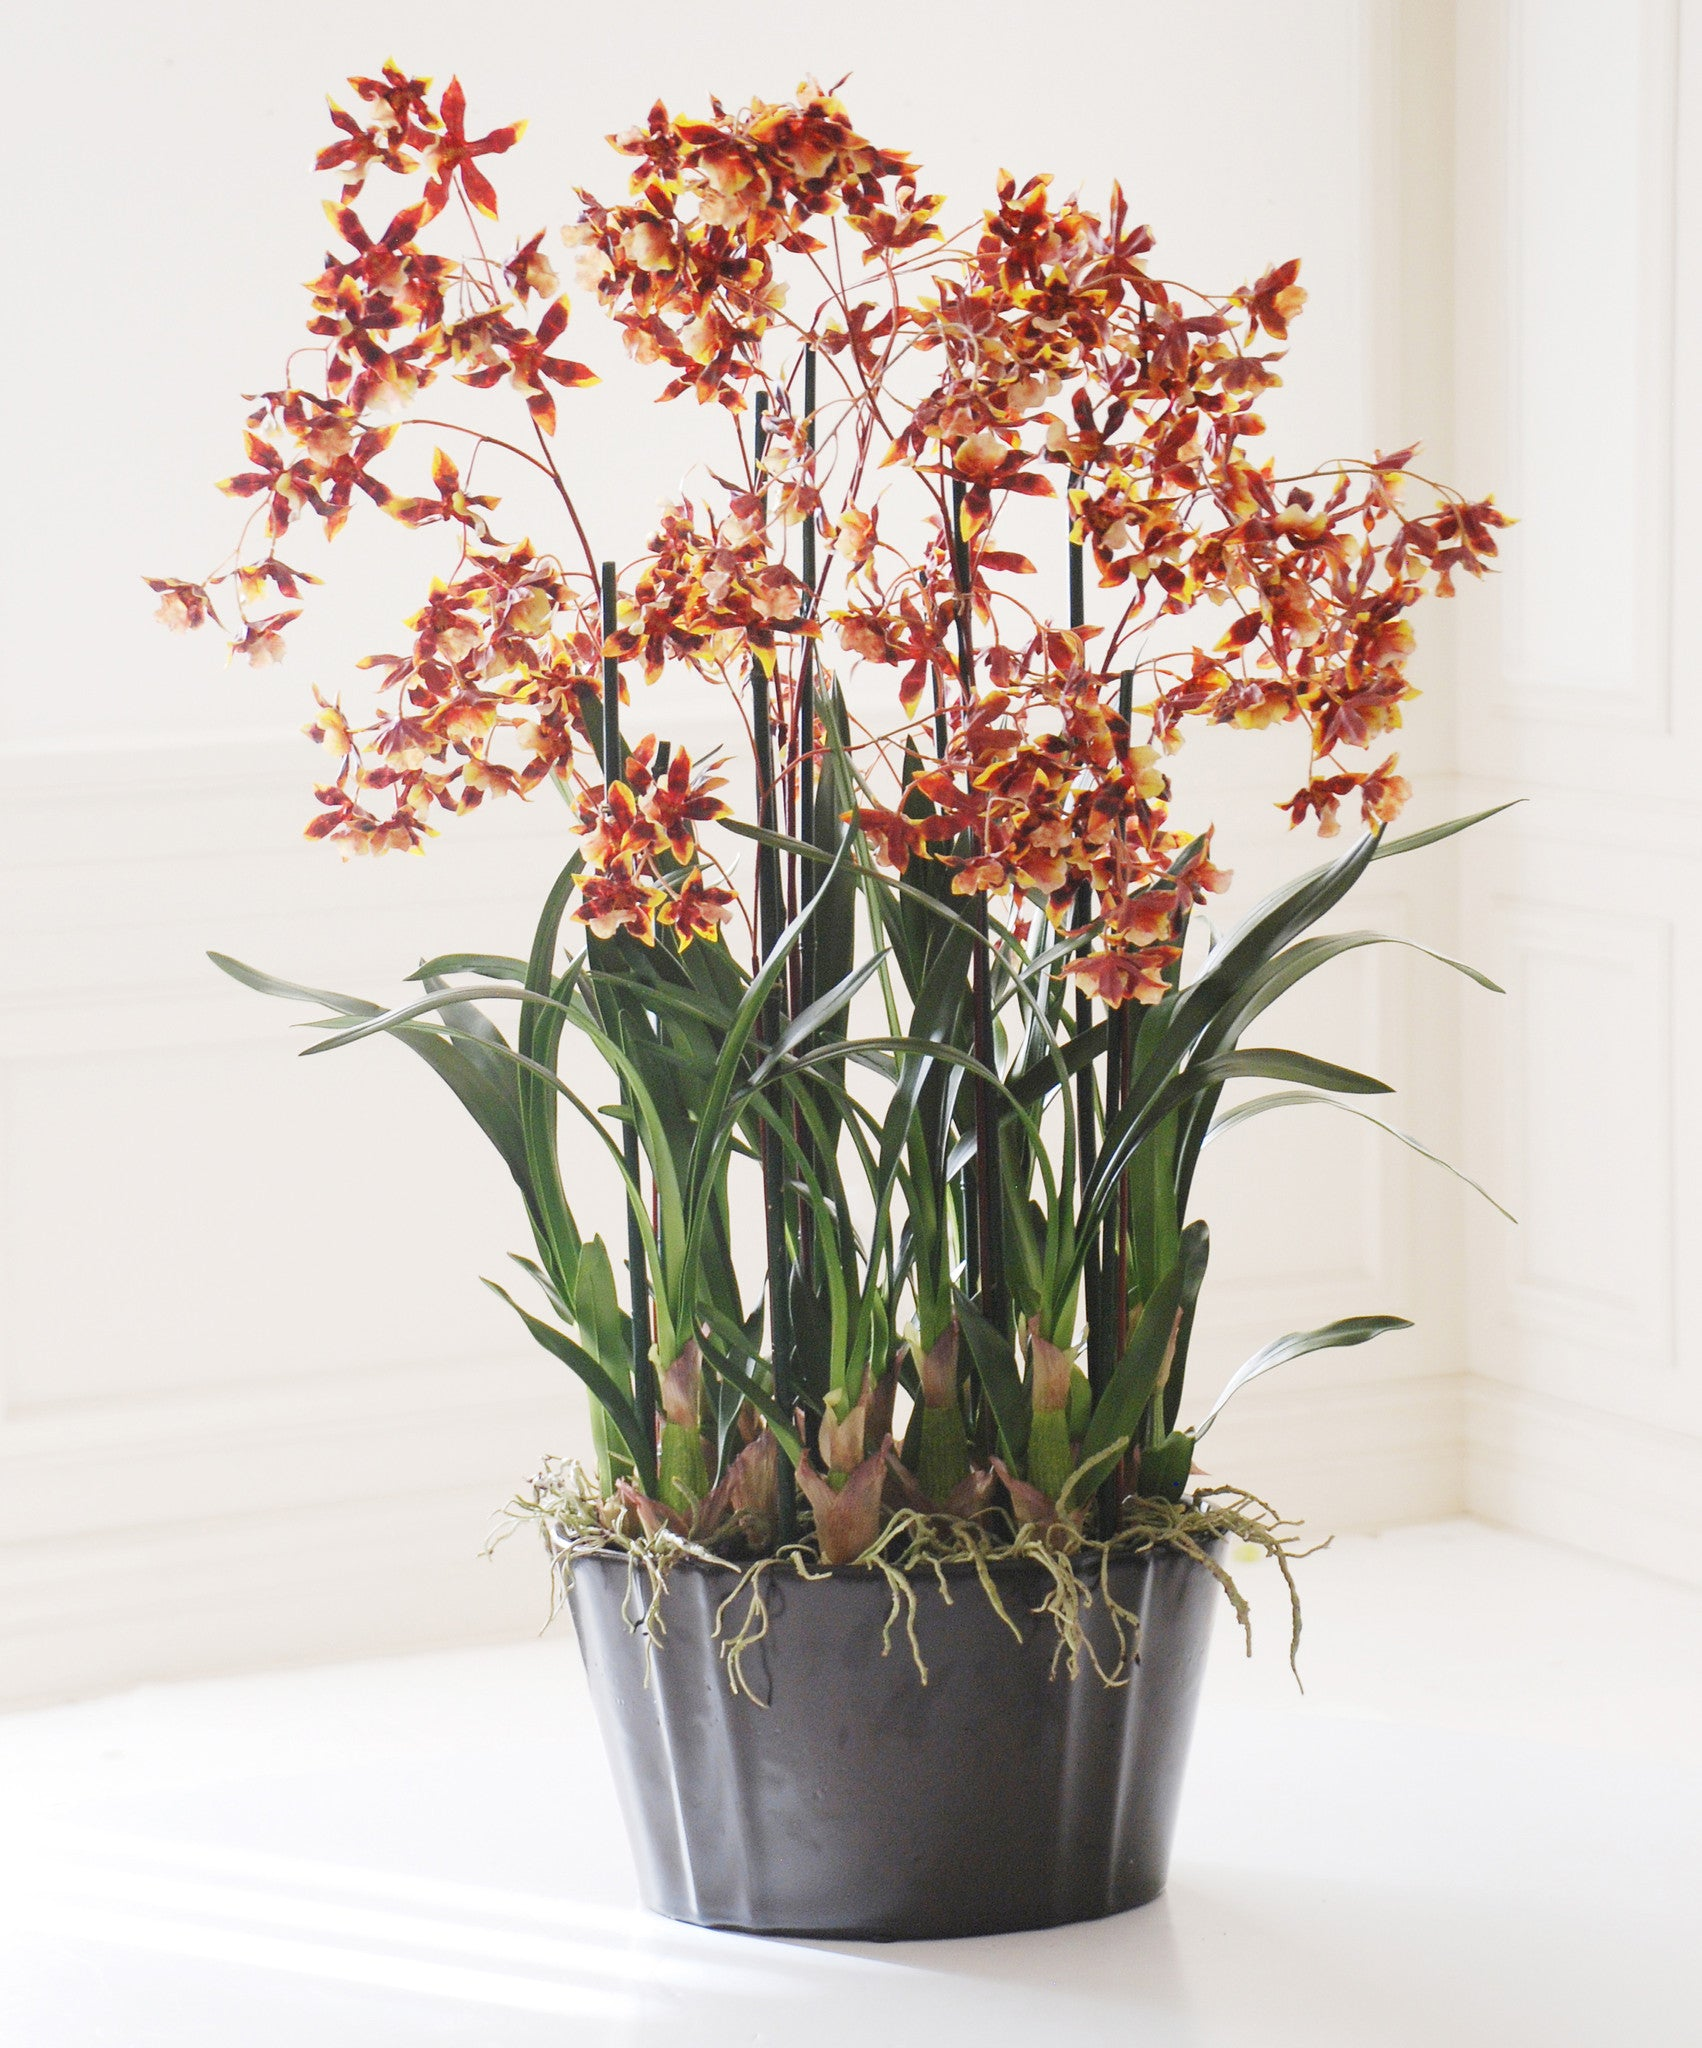 RED DANCING ONCIDIUM ORCHIDS (WHWWH109-BKRD) - Winward Home silk flower arrangements